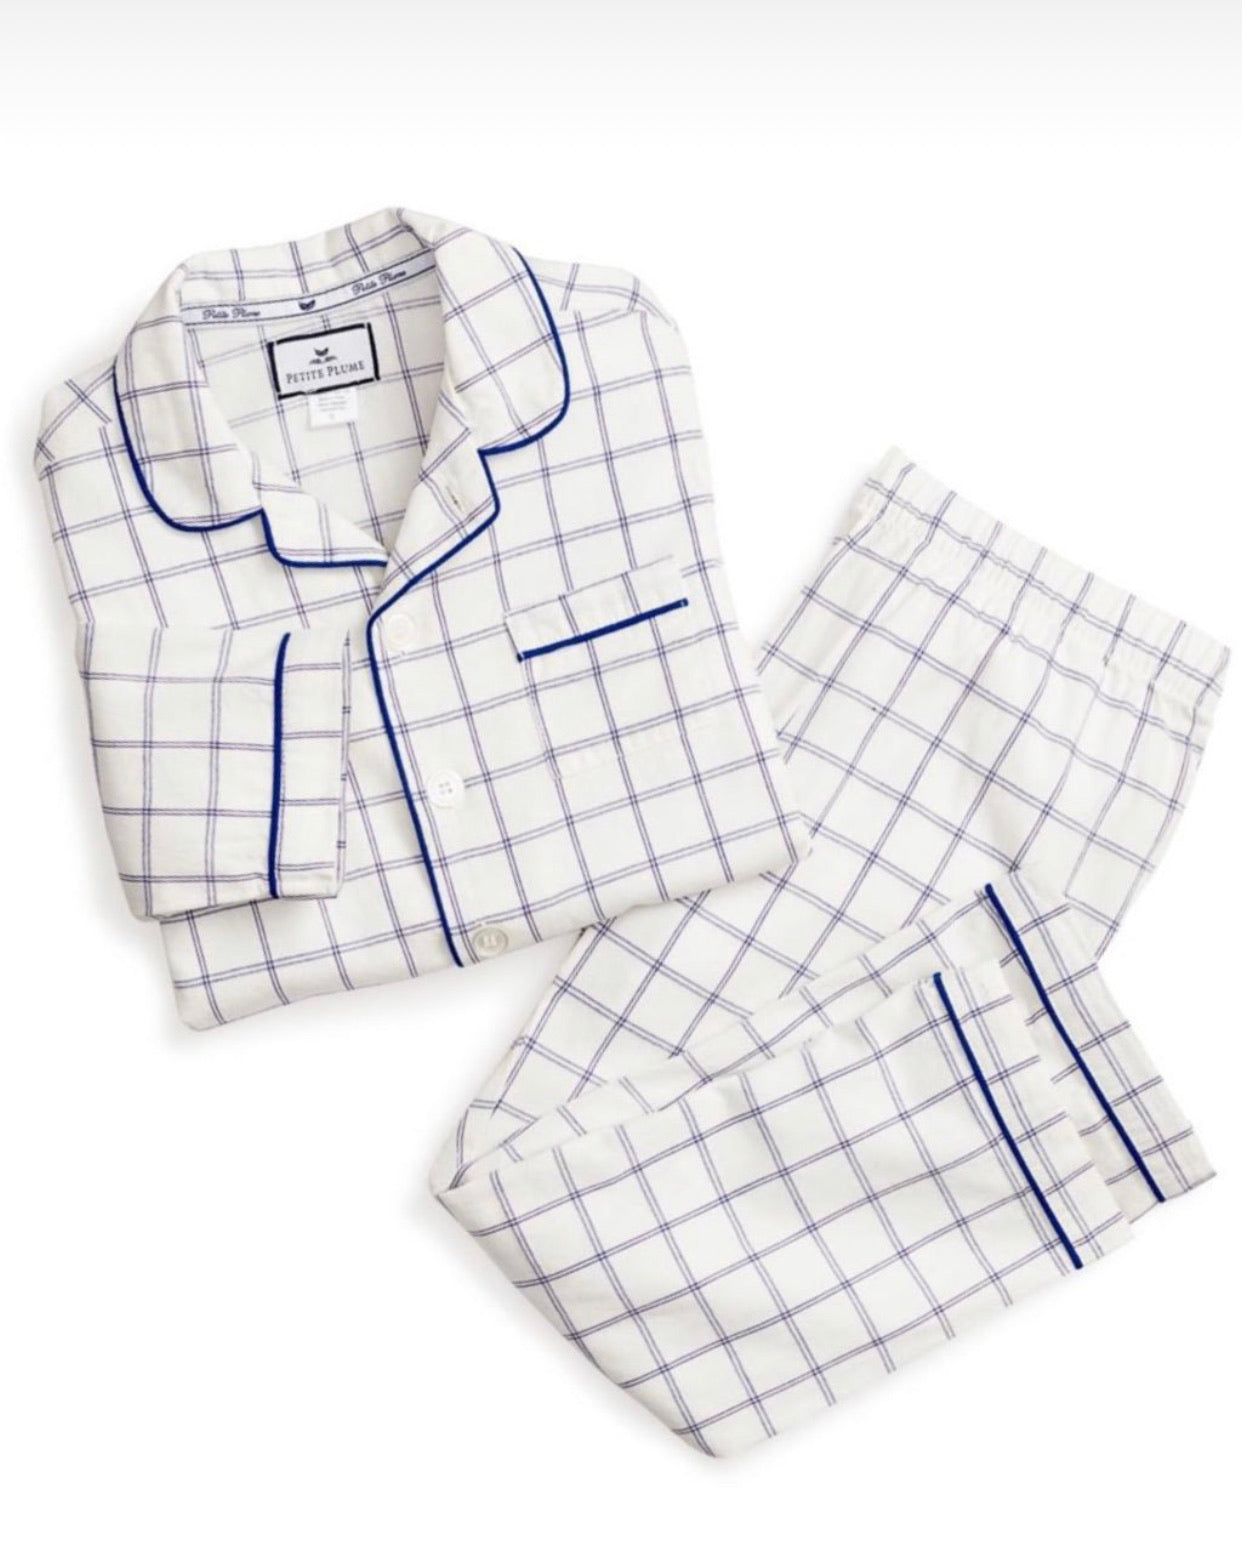 Tattersall Pajama Set - 2,5,7,10